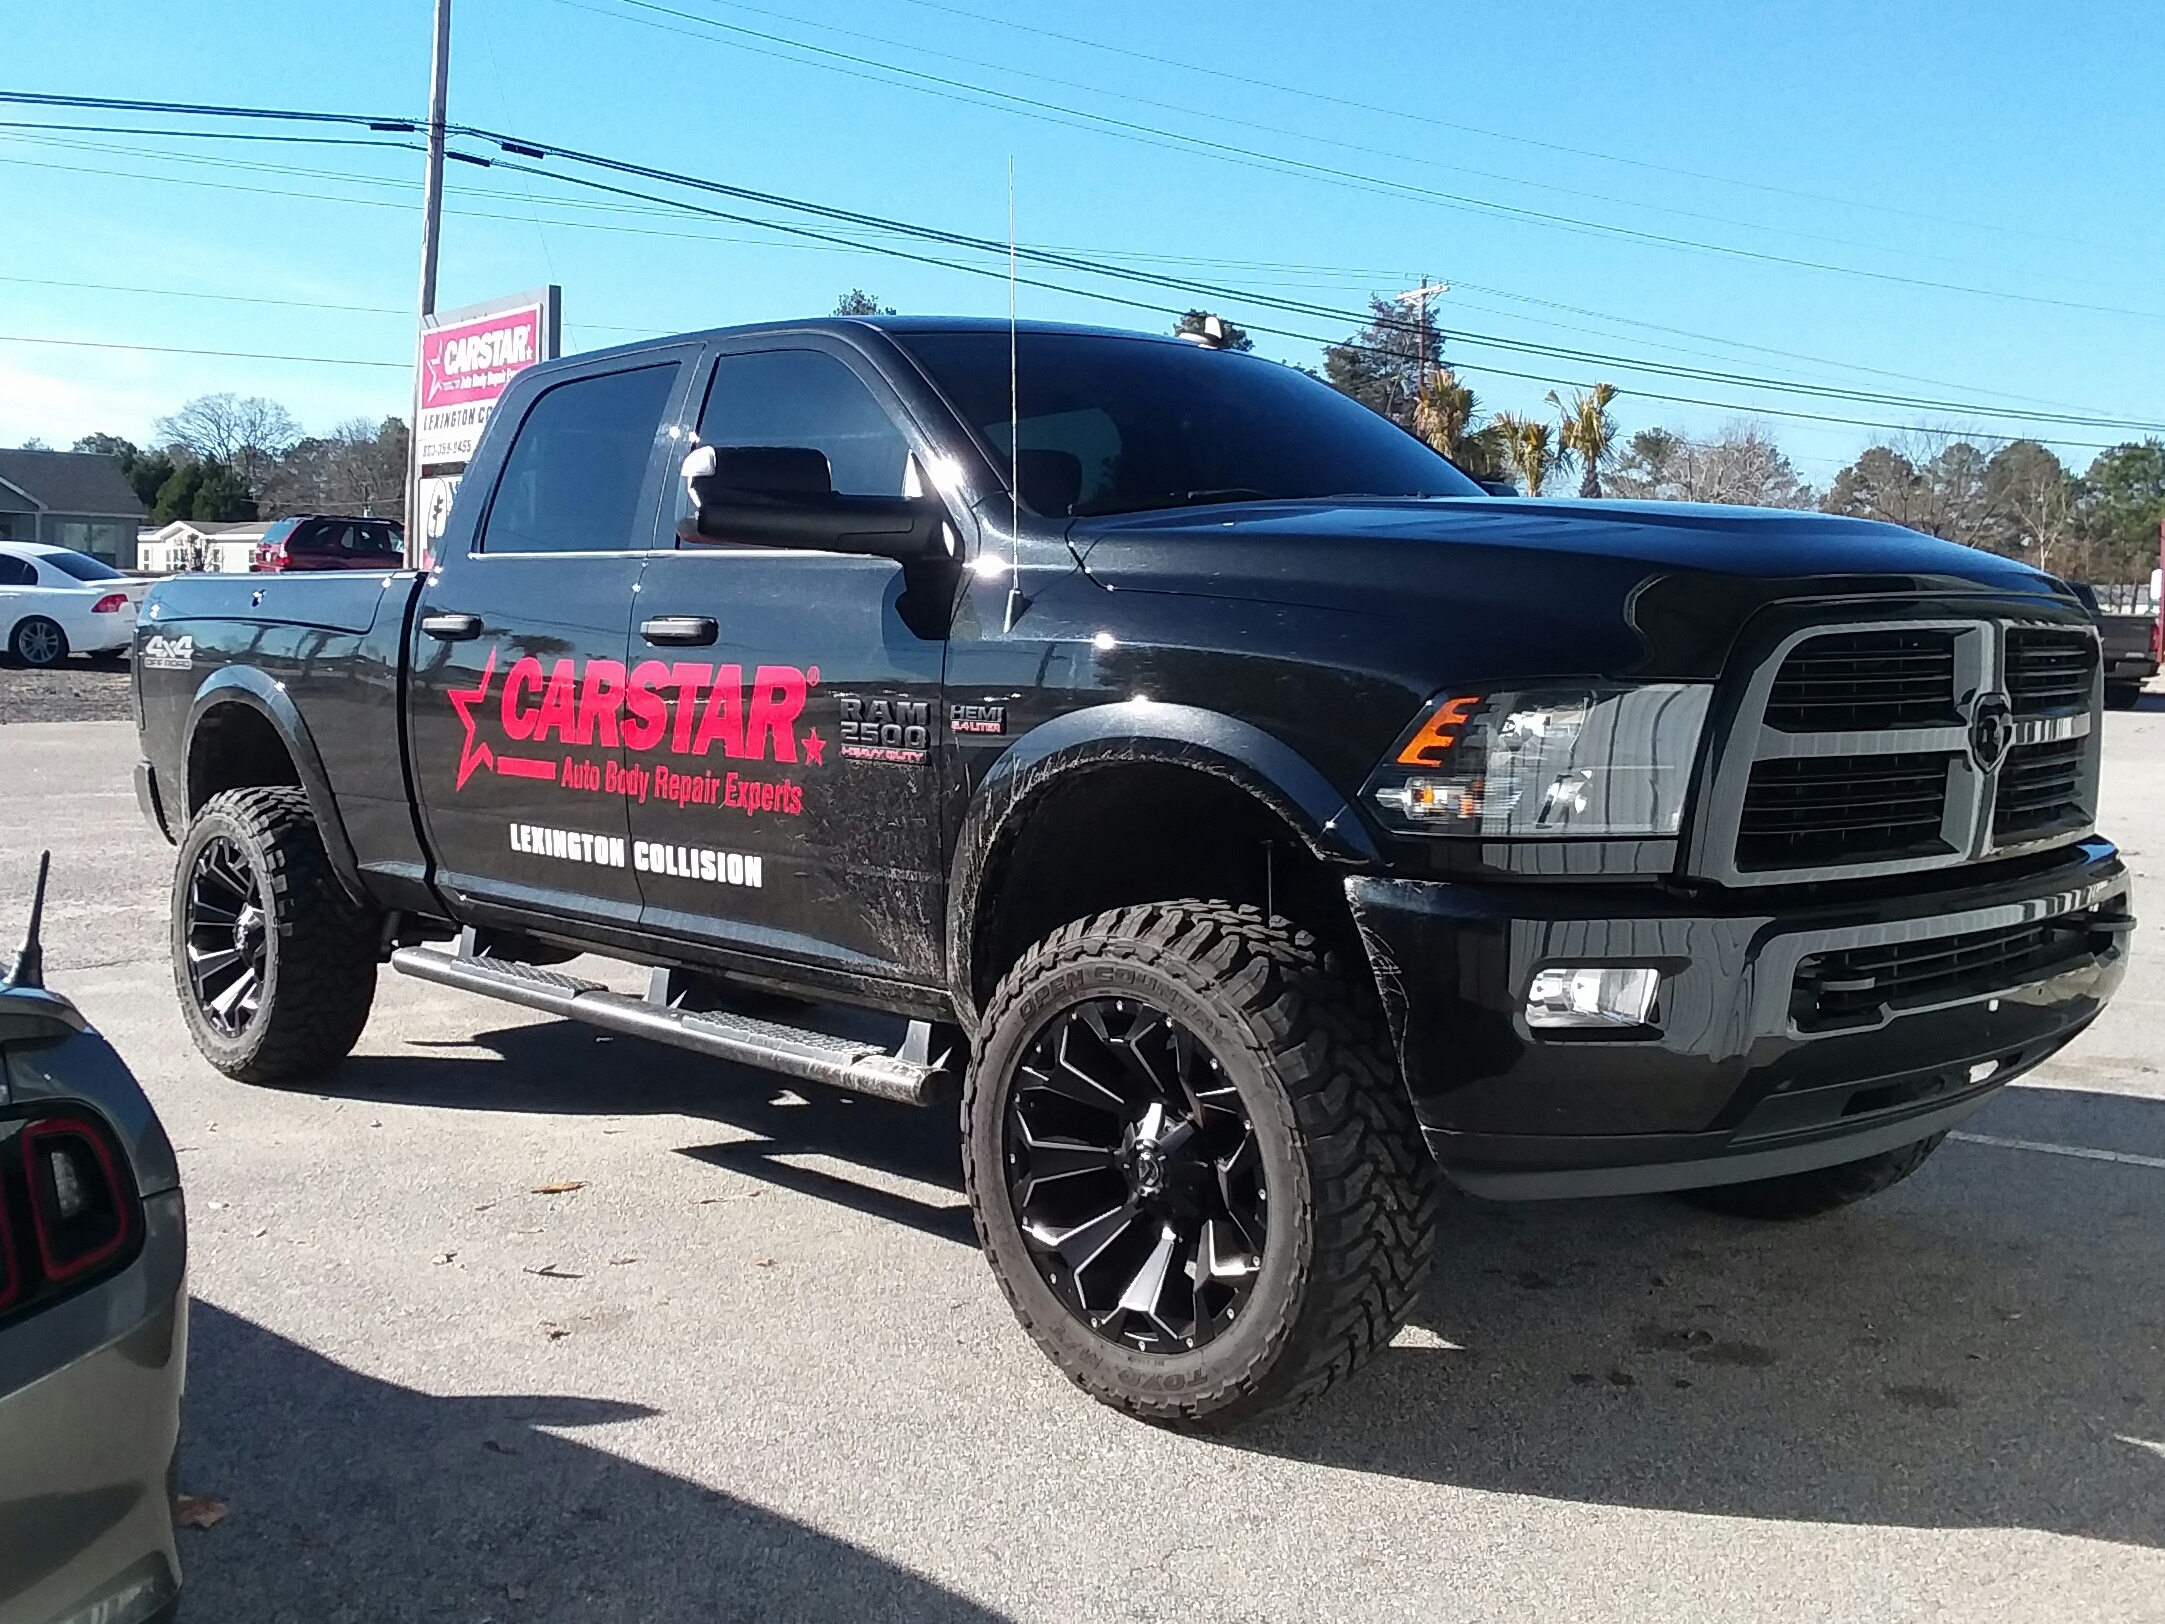 Carstar Lexington Collision Truck